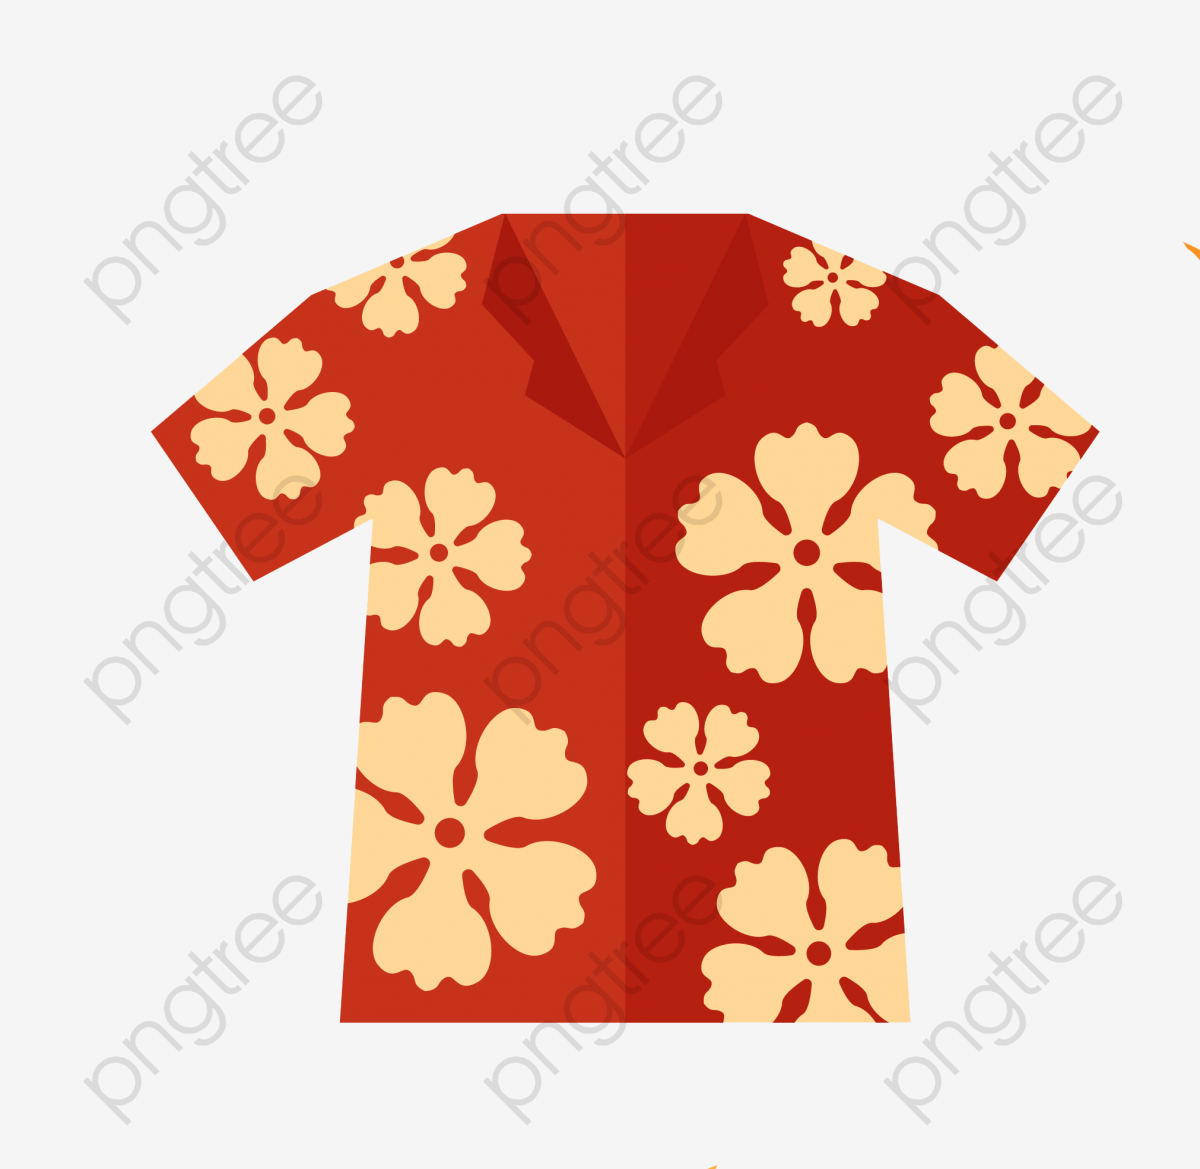 3c5cbe51f Commercial use resource. Upgrade to Premium plan and get license  authorization.Upgrade Now · hawaiian shirt ...